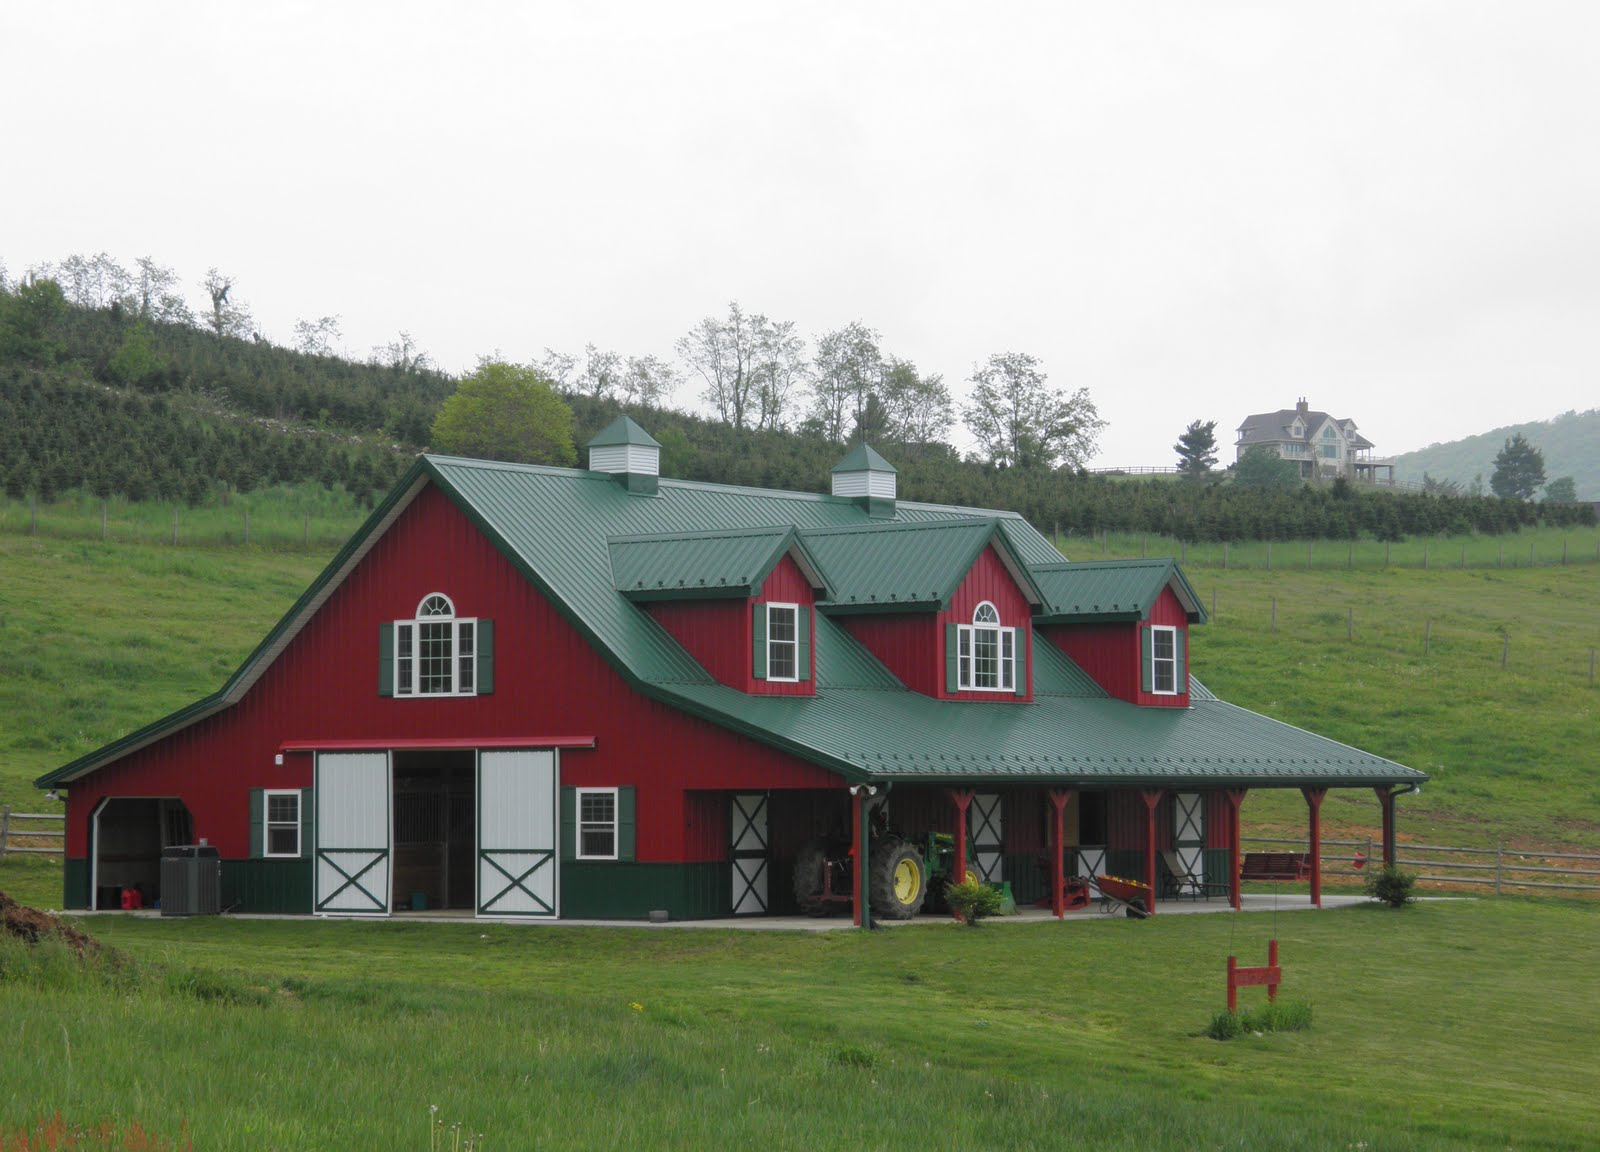 Barn Home swoon Will have one some day Dream Home ideas